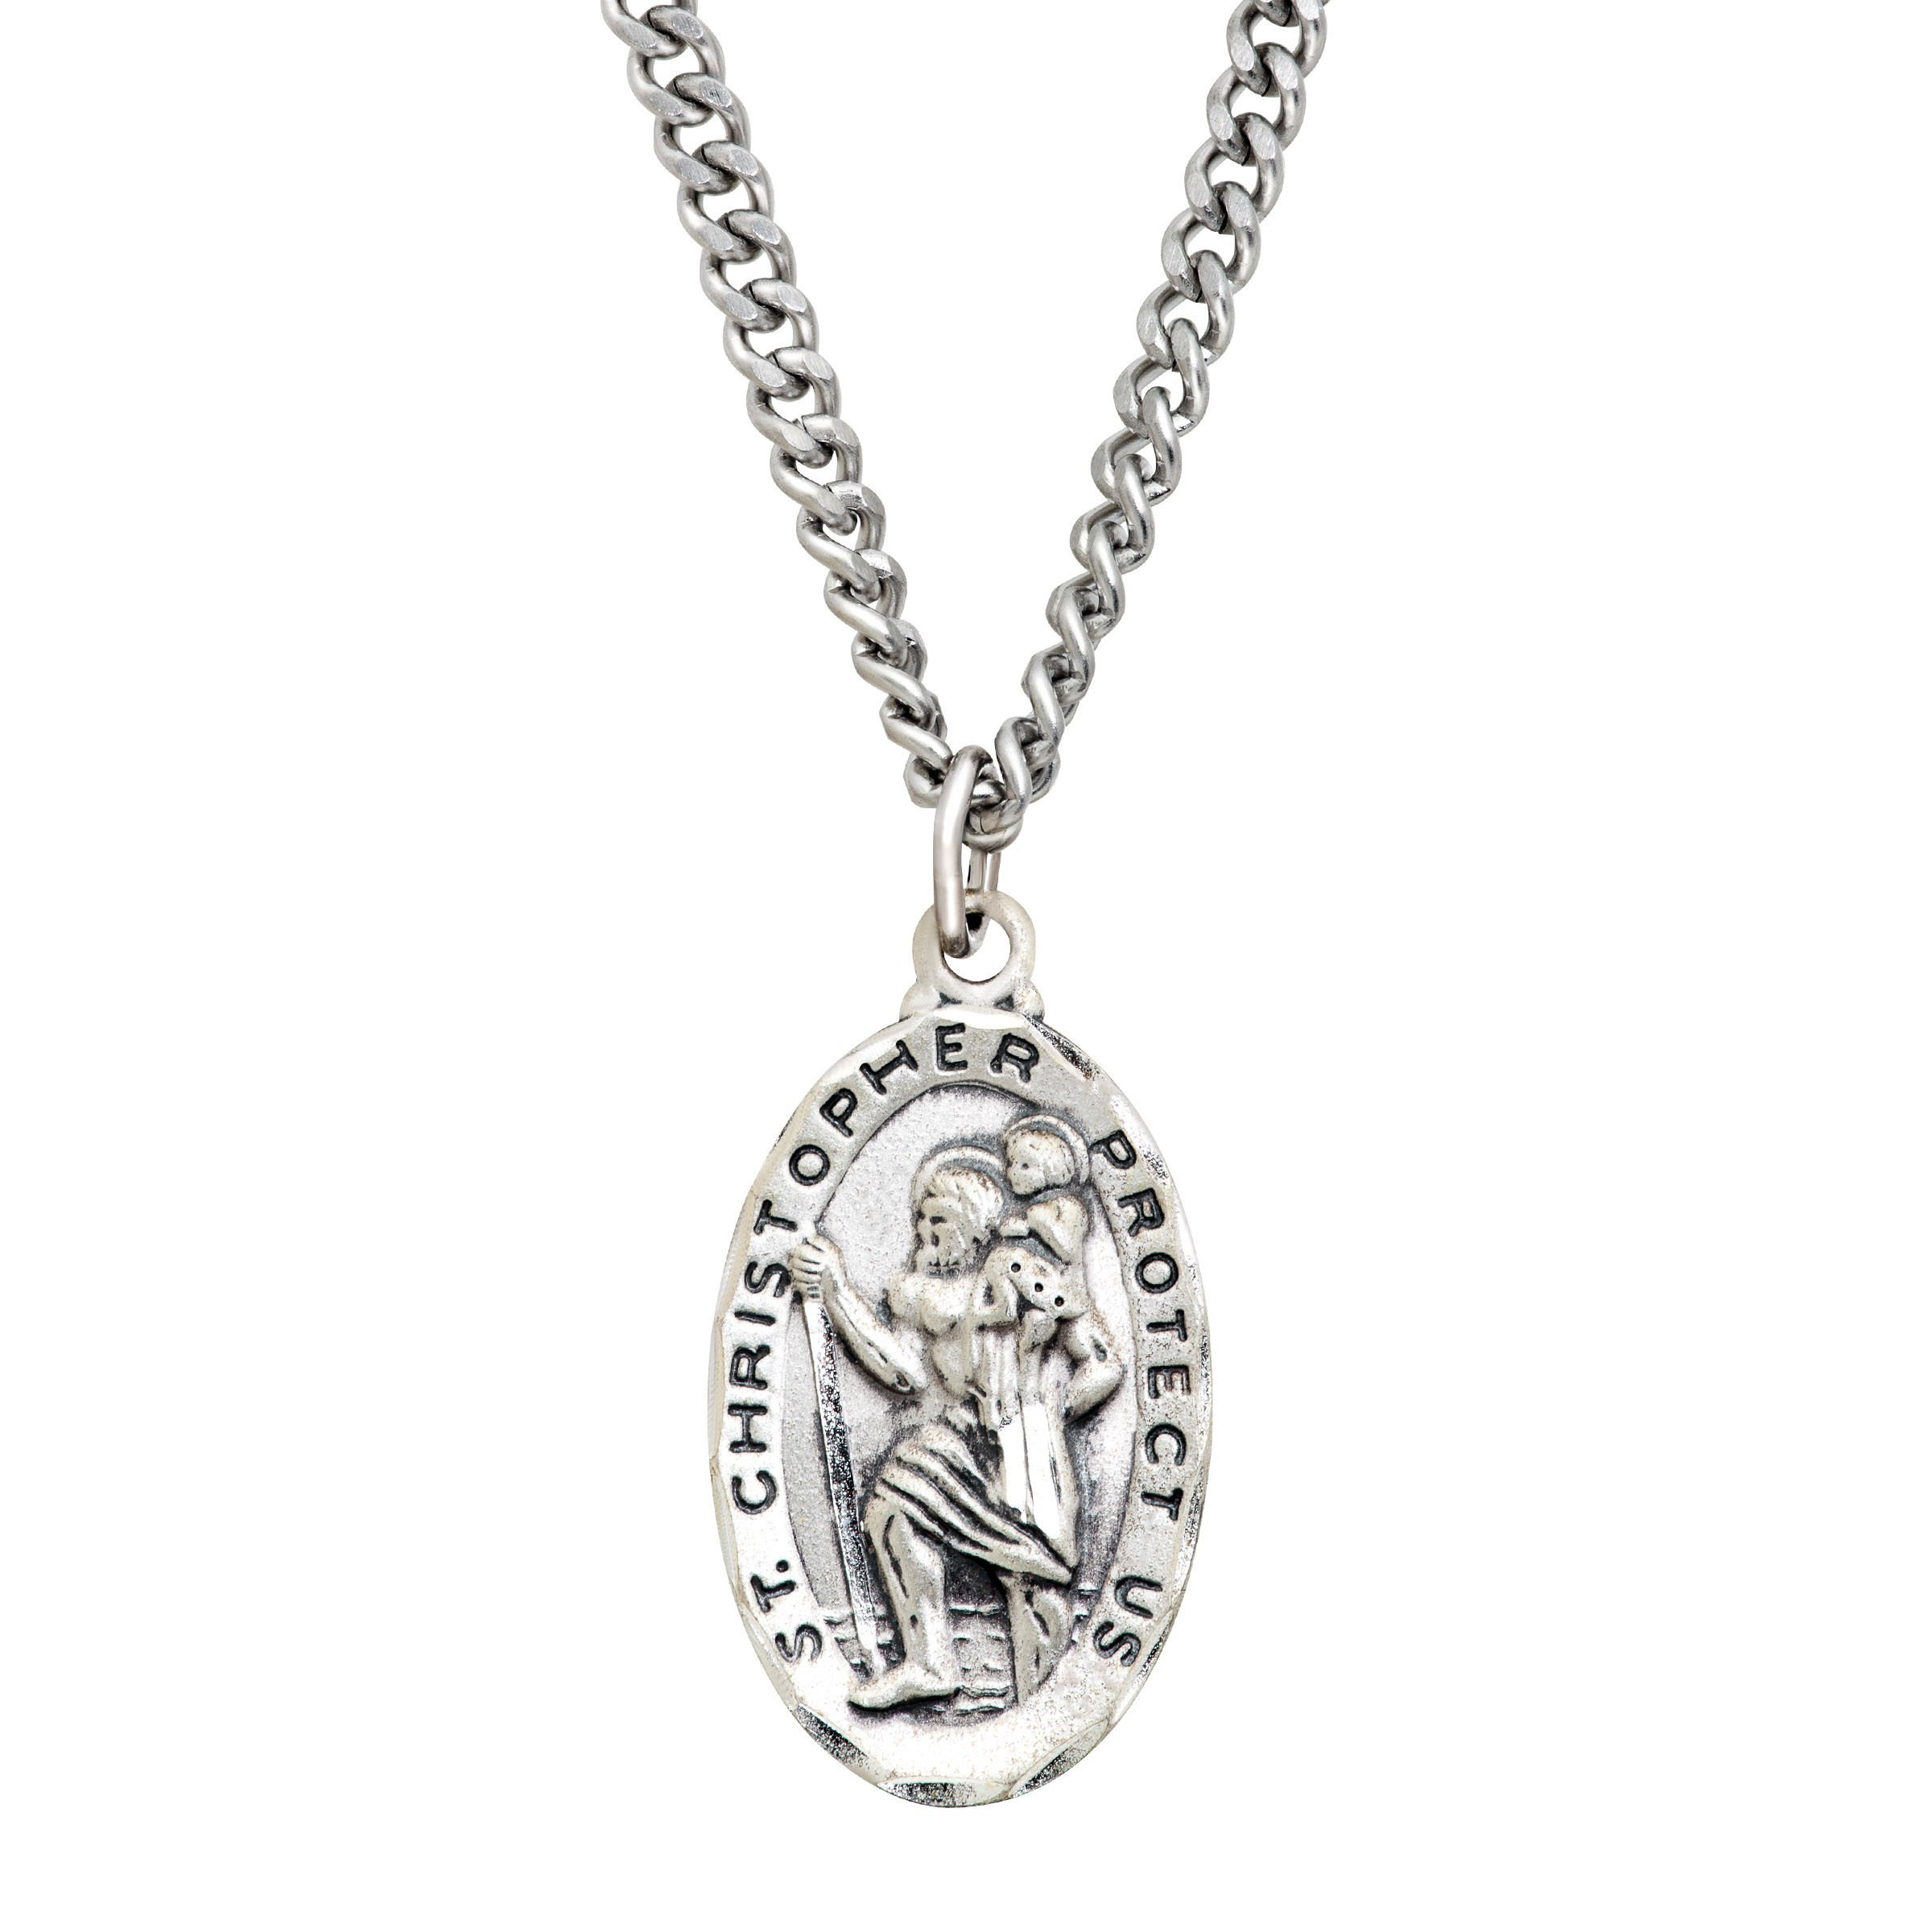 St. Christopher Medallion Necklace in Sterling Silver & Stainless Steel